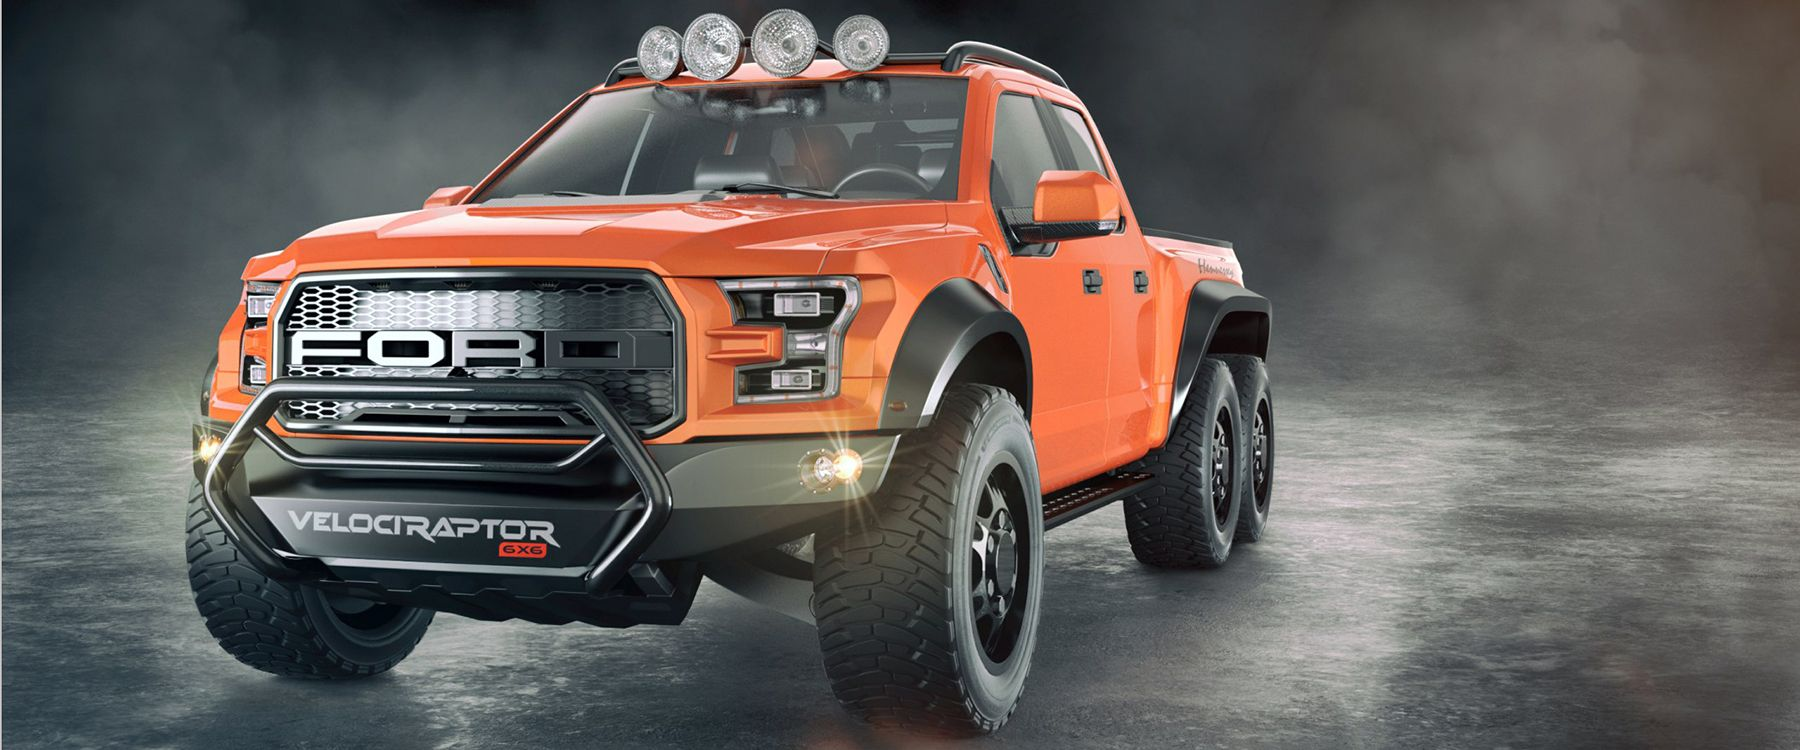 ford + hennessey velociraptor 6x6: six wheels and 650 horsepower